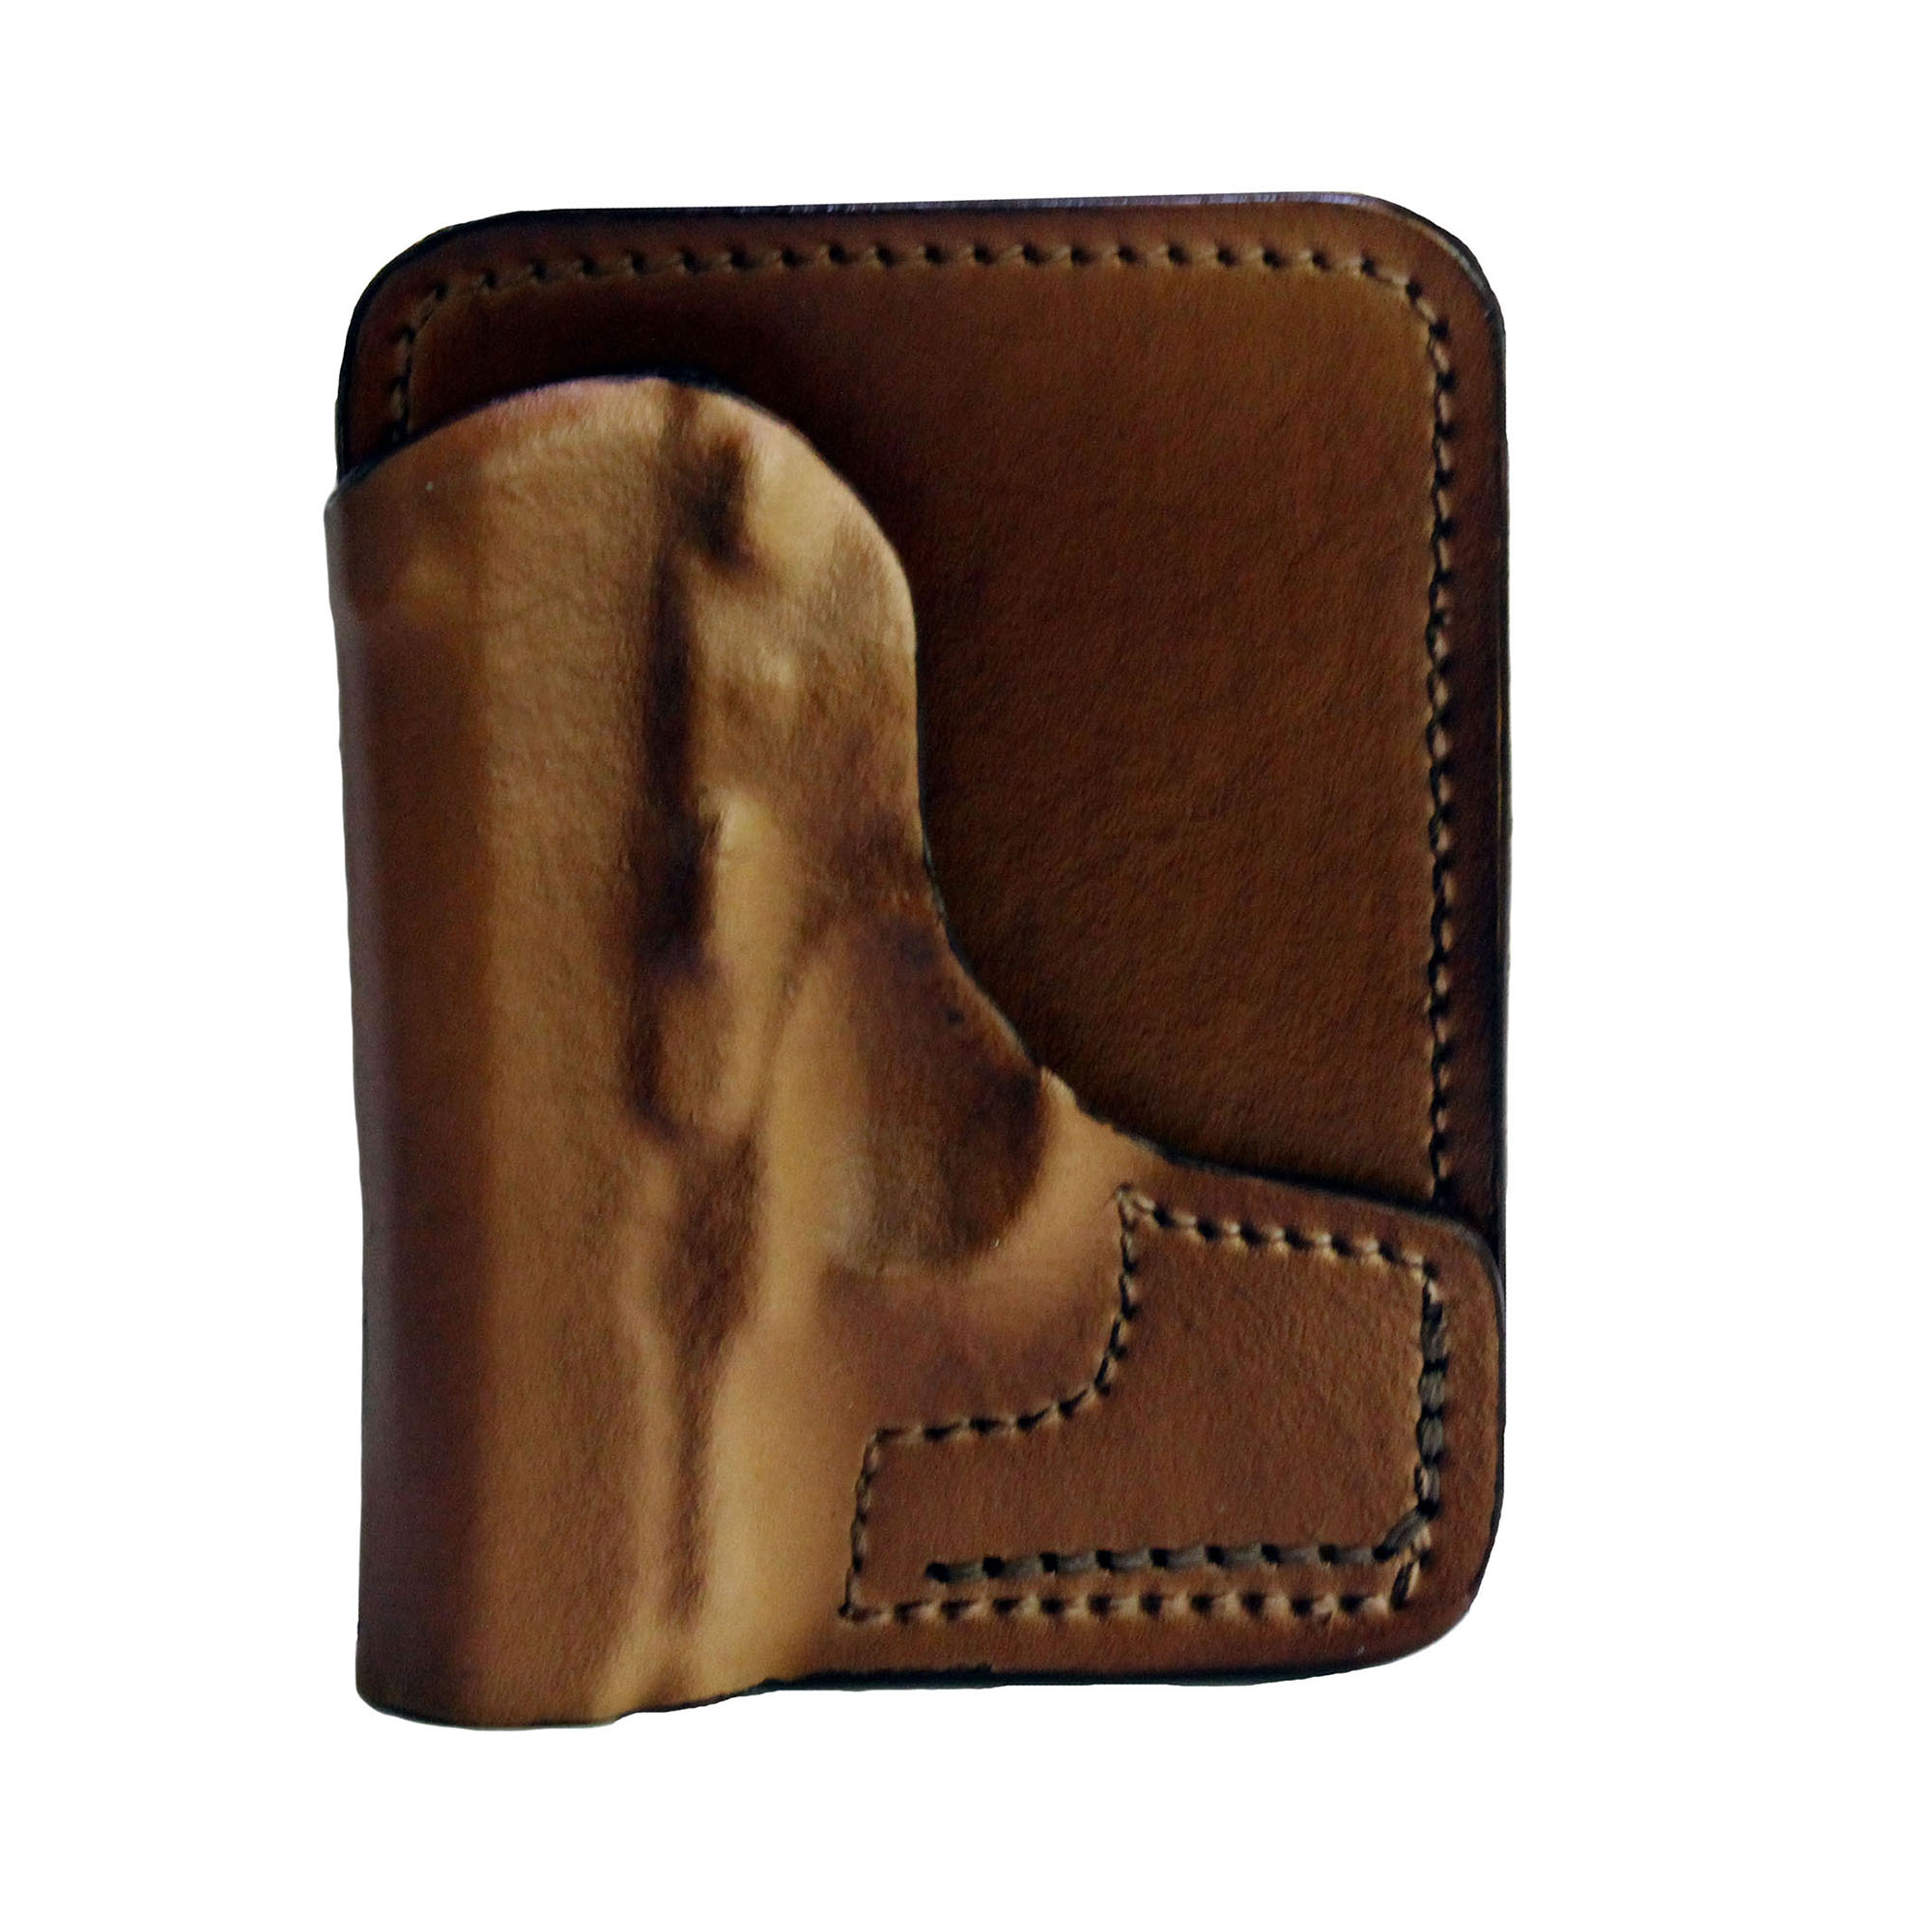 Frontline Back Pocket Leather Holster Colt Mustang, Brown, Right Hand